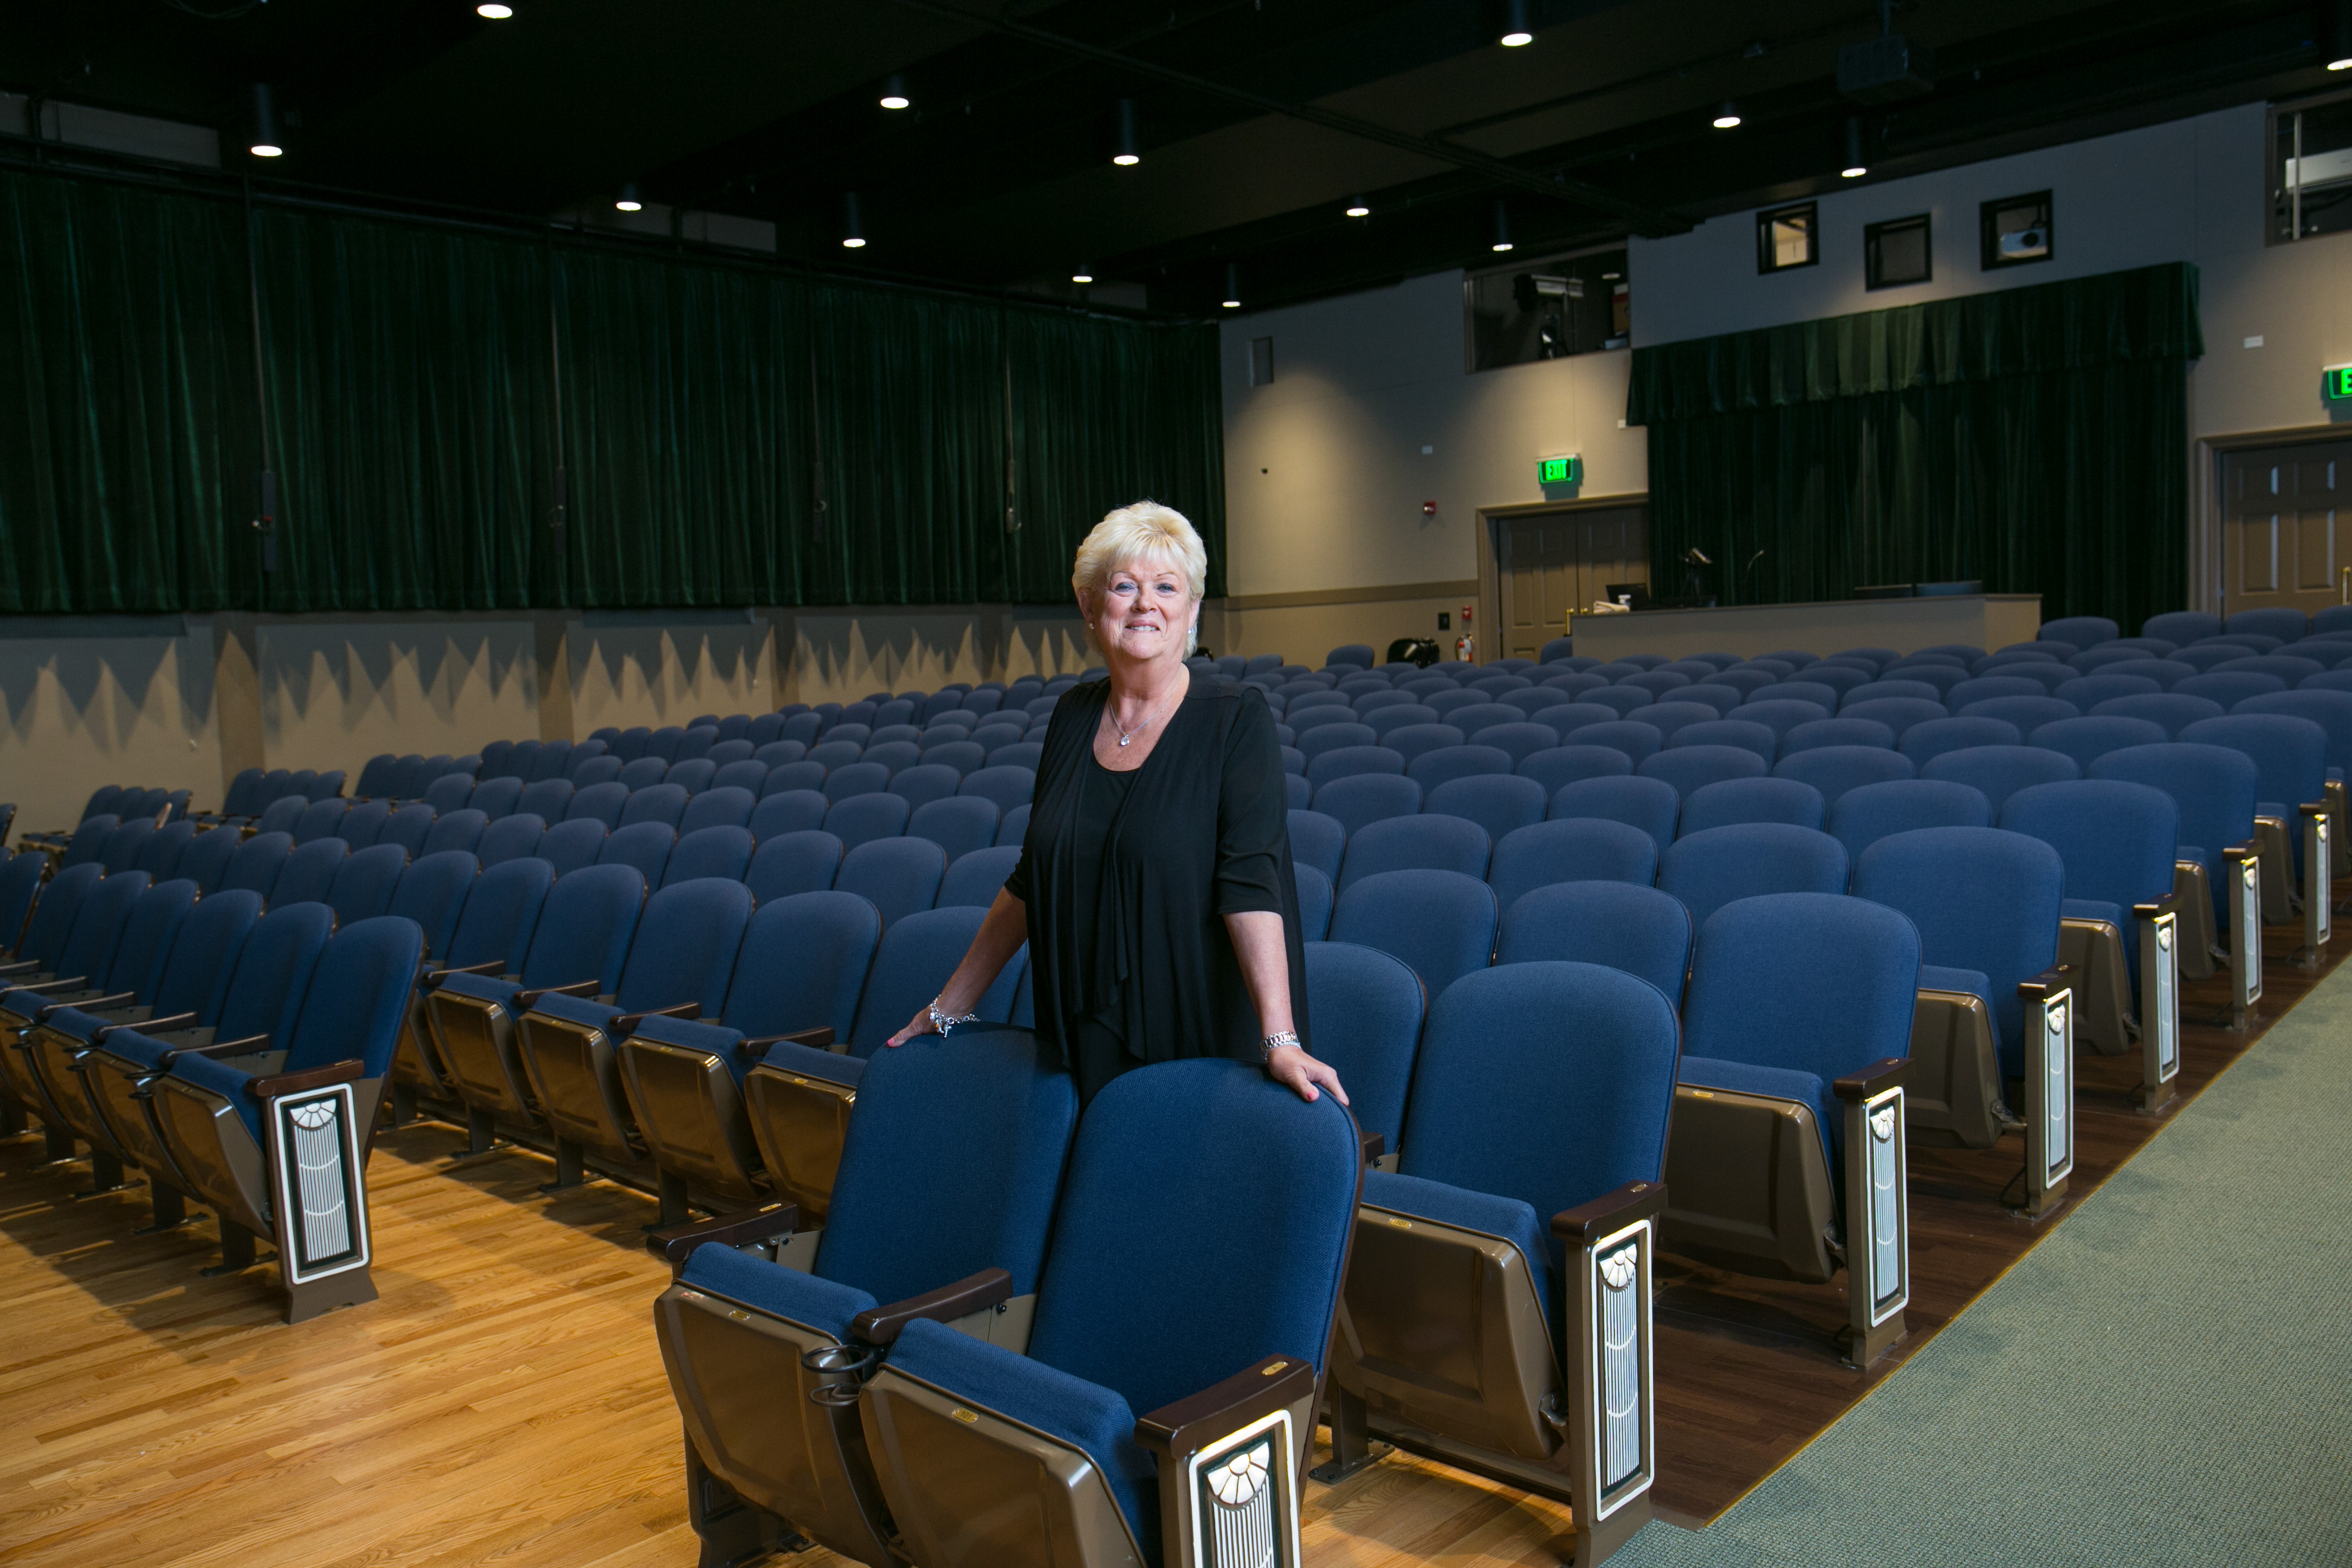 Nancy Hughes at one of the many beneficiaries of her philanthropy: the John & Nancy Hughes Theater at Gorton Community Center in Lake Forest.